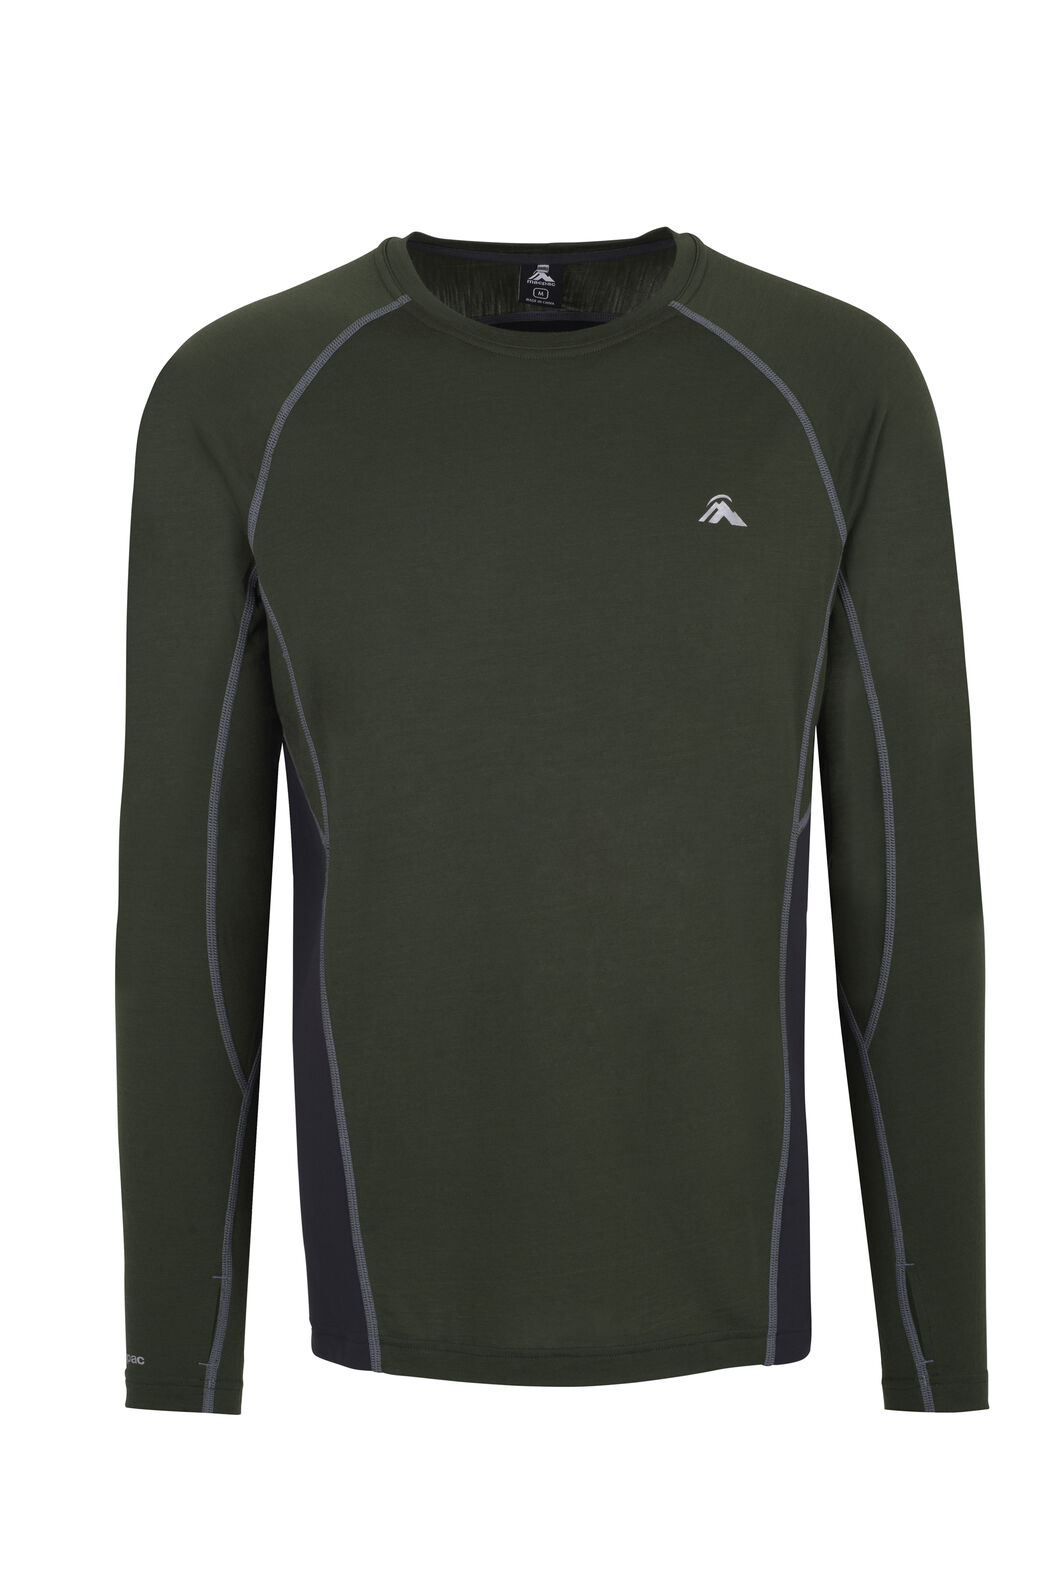 Macpac Casswell Long Sleeve Merino Crew - Men's, Rifle Green, hi-res